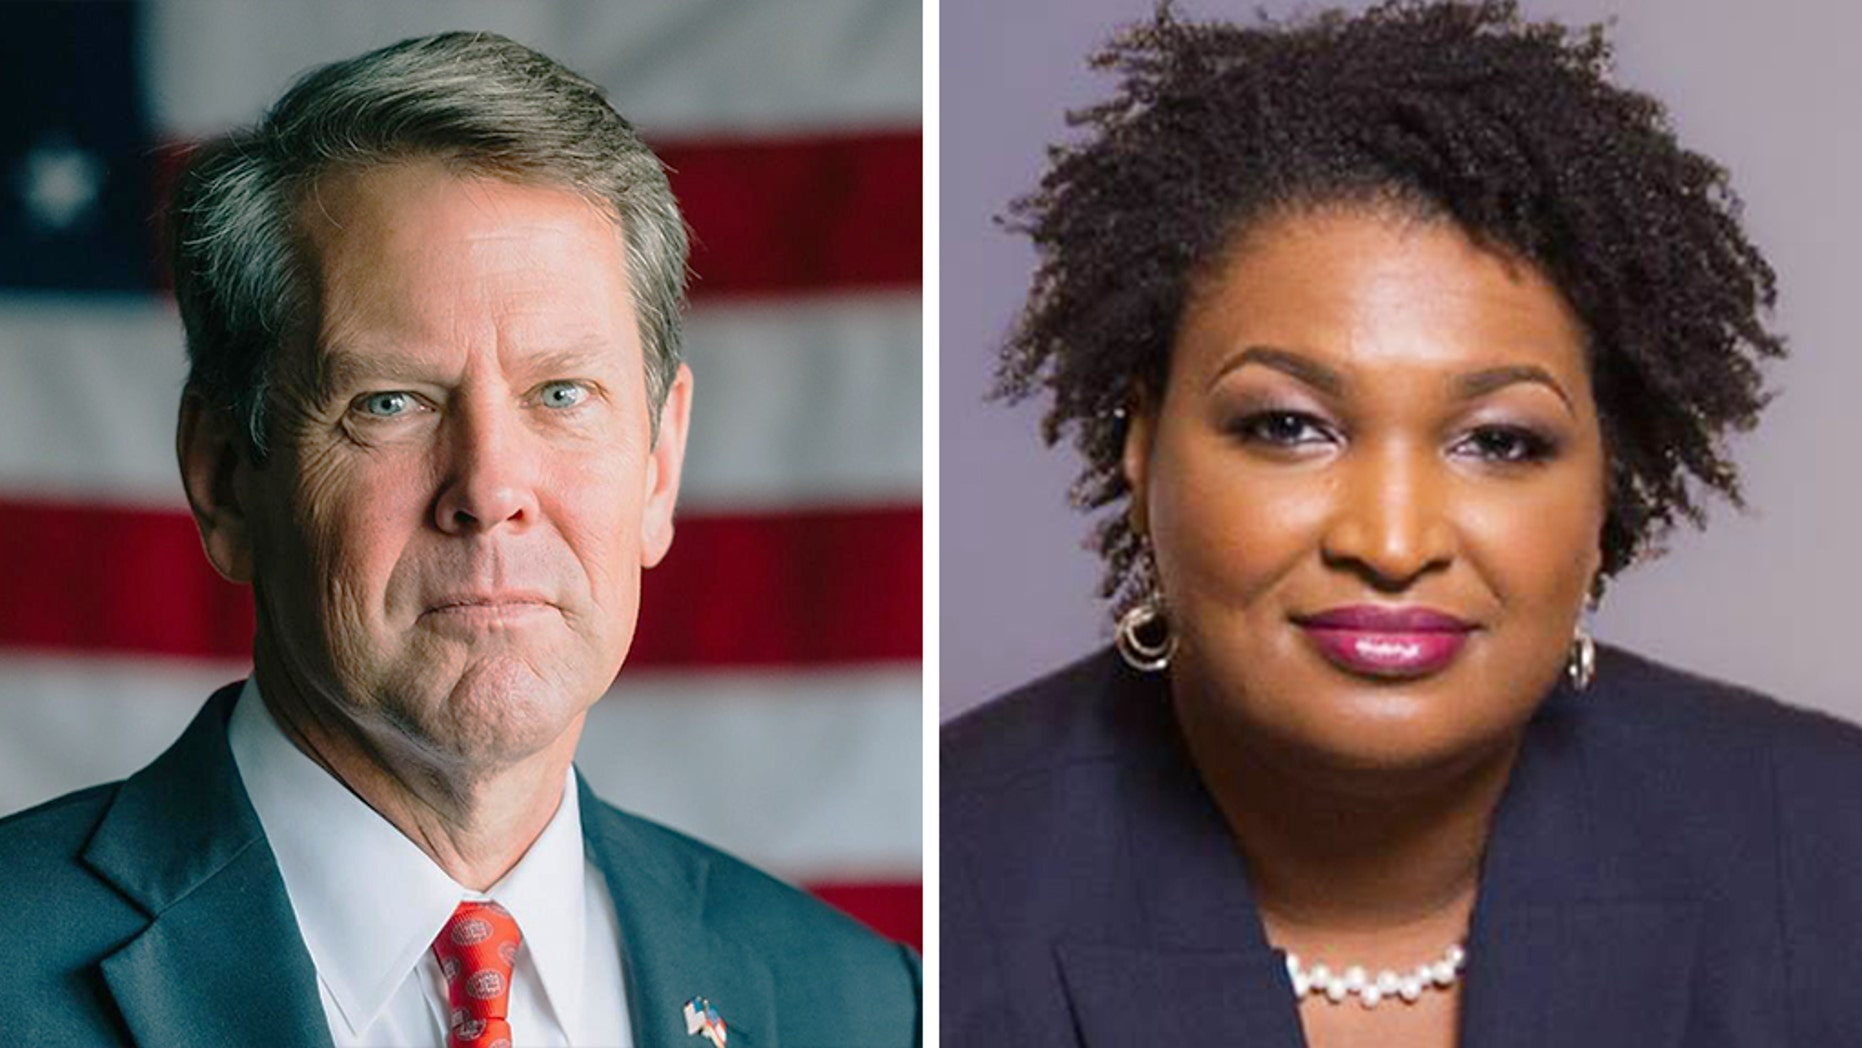 Republican Brian Kemp is running against Democrat Stacey Abrams in the race for governor of Georgia.